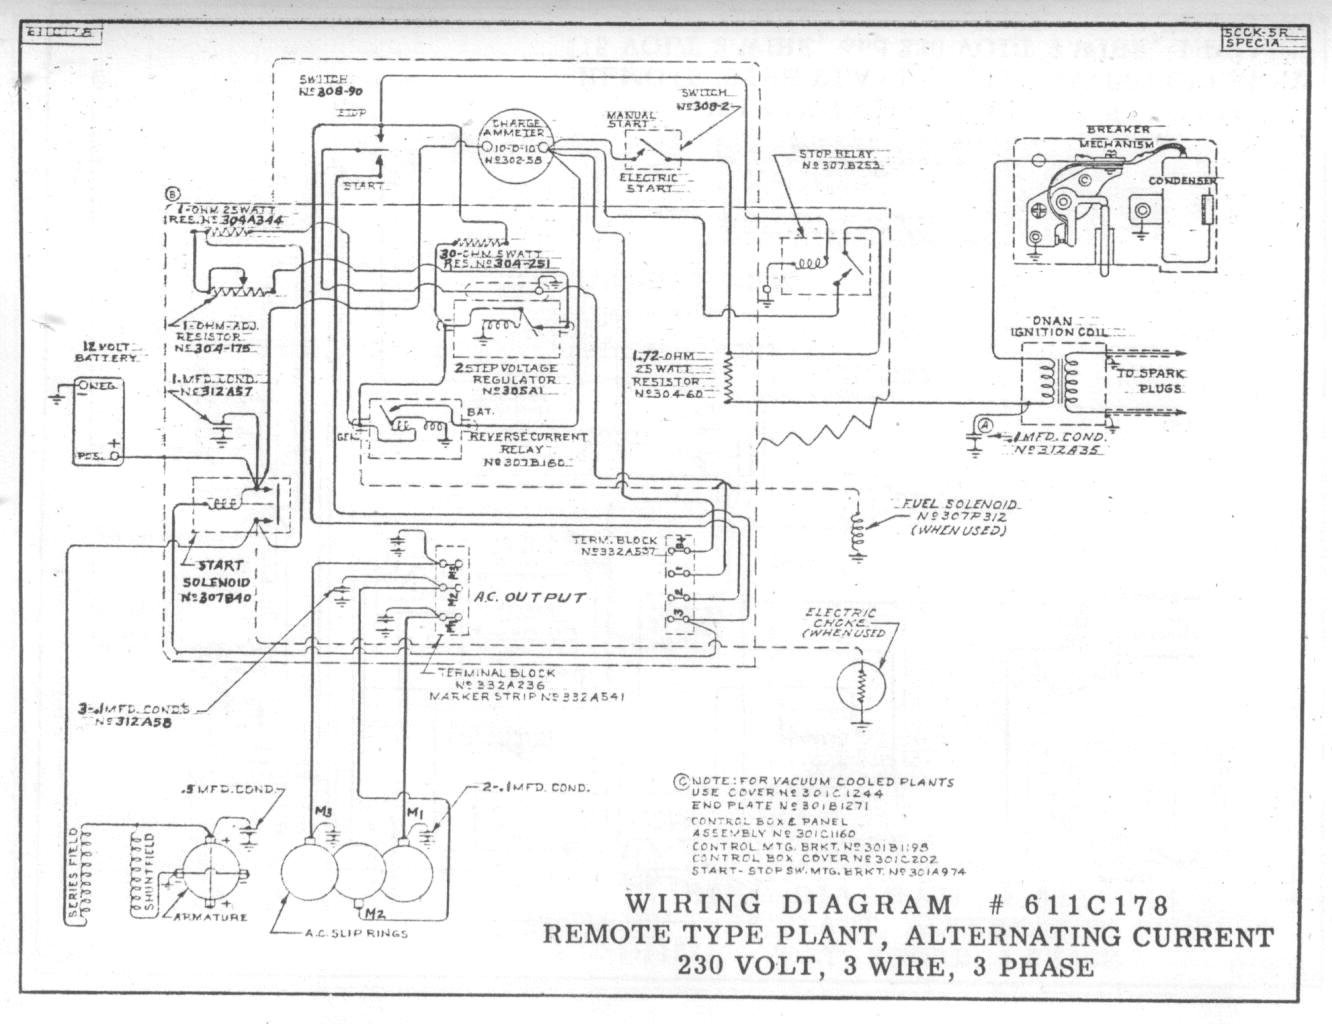 genset wiring diagram genset image wiring diagram onan genset wiring diagram flysky receiver wiring diagram on genset wiring diagram